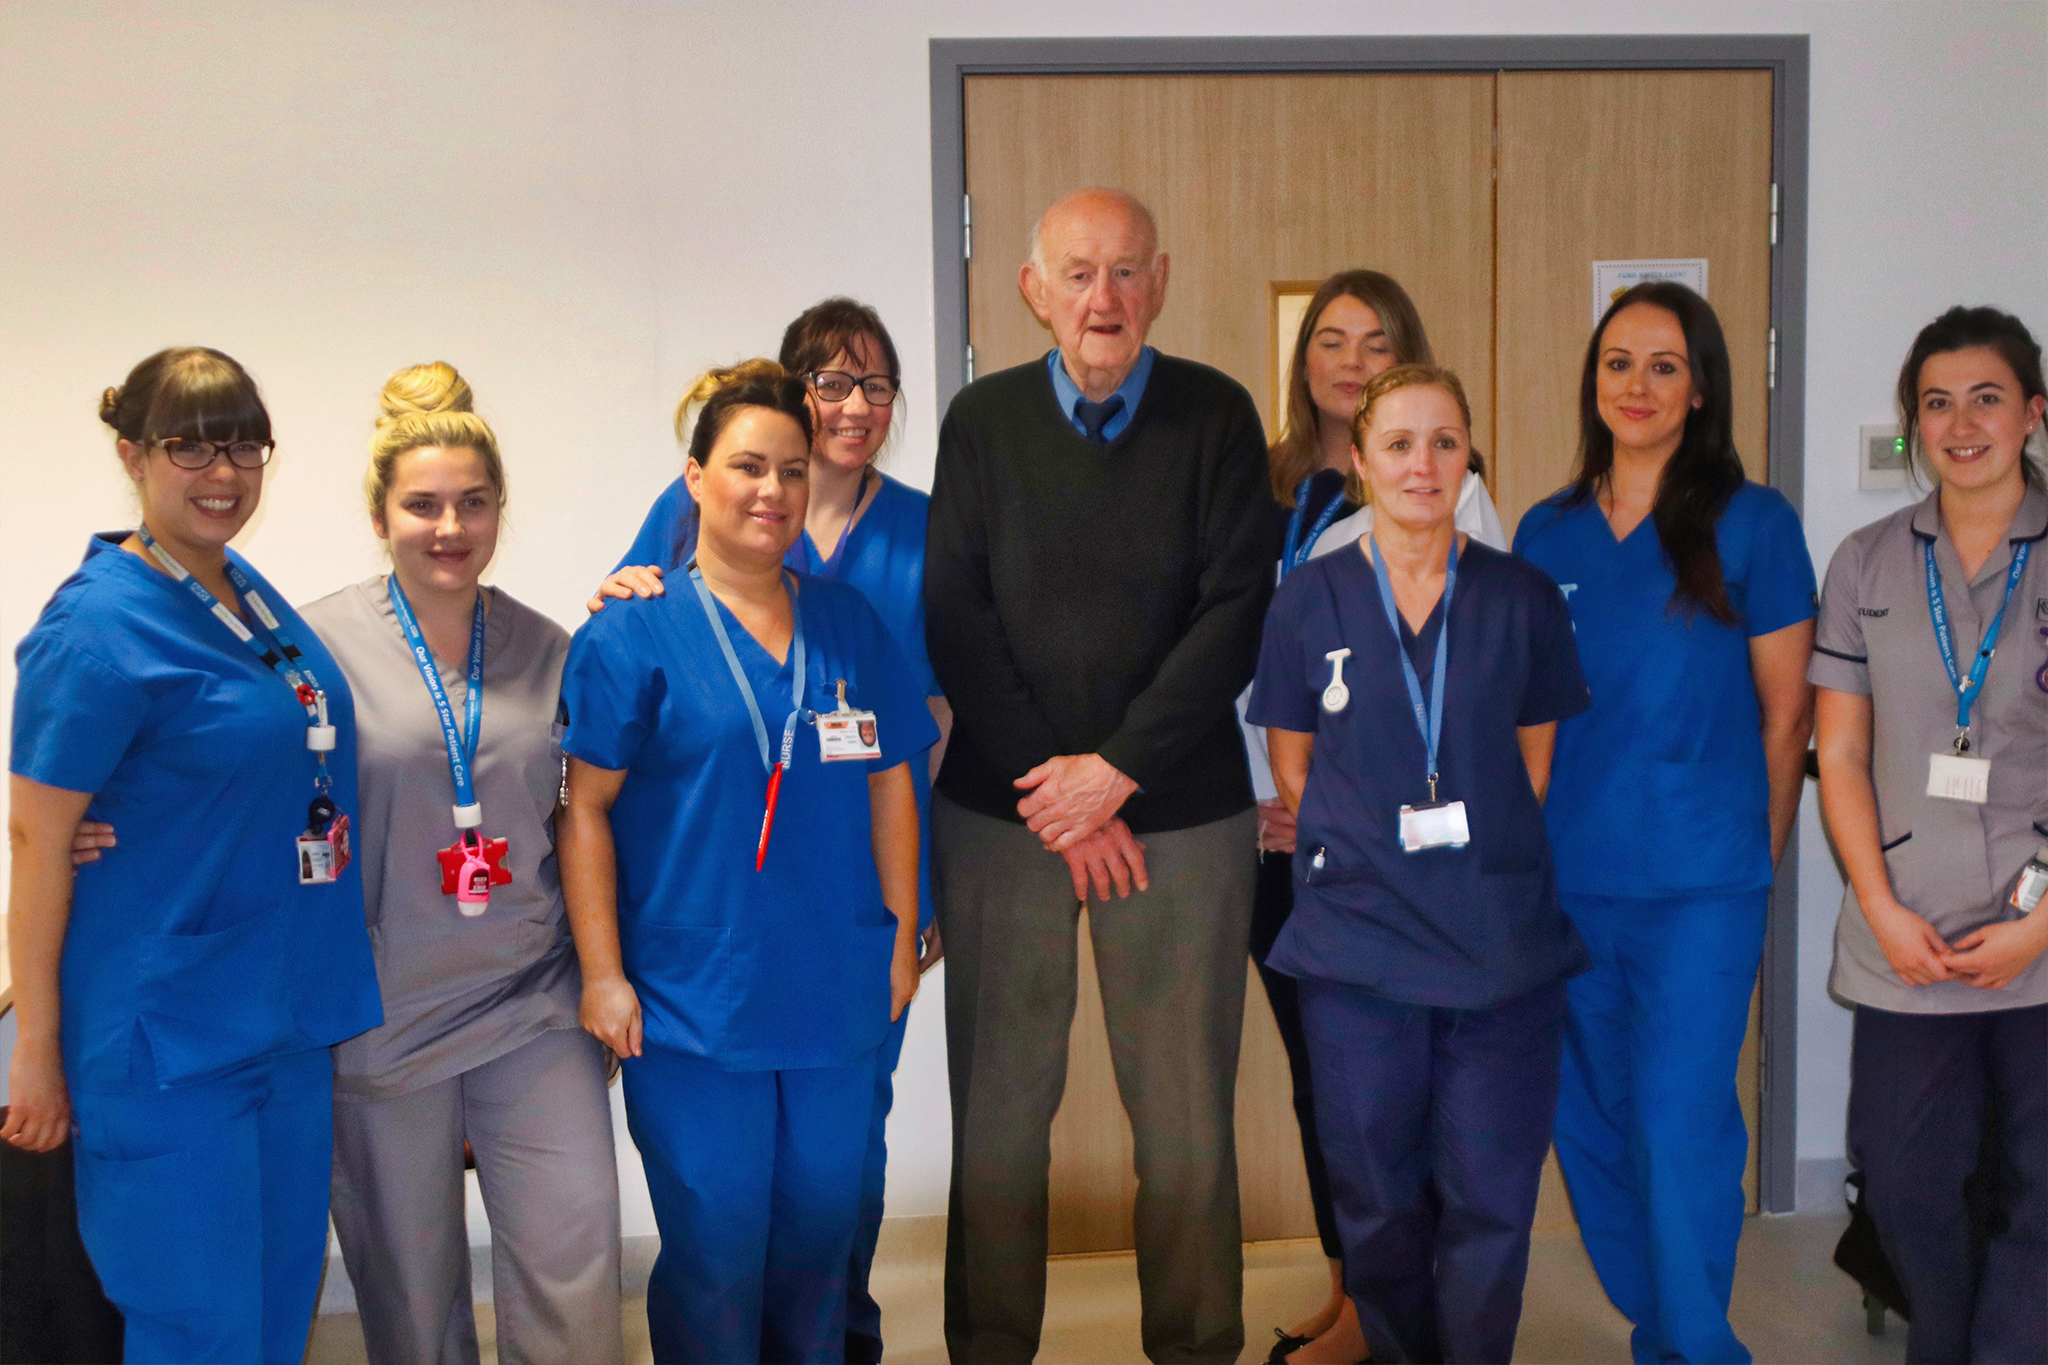 Saints legend and Beat The Scrum Ambassador Ray French visits staff at Whiston Hospital